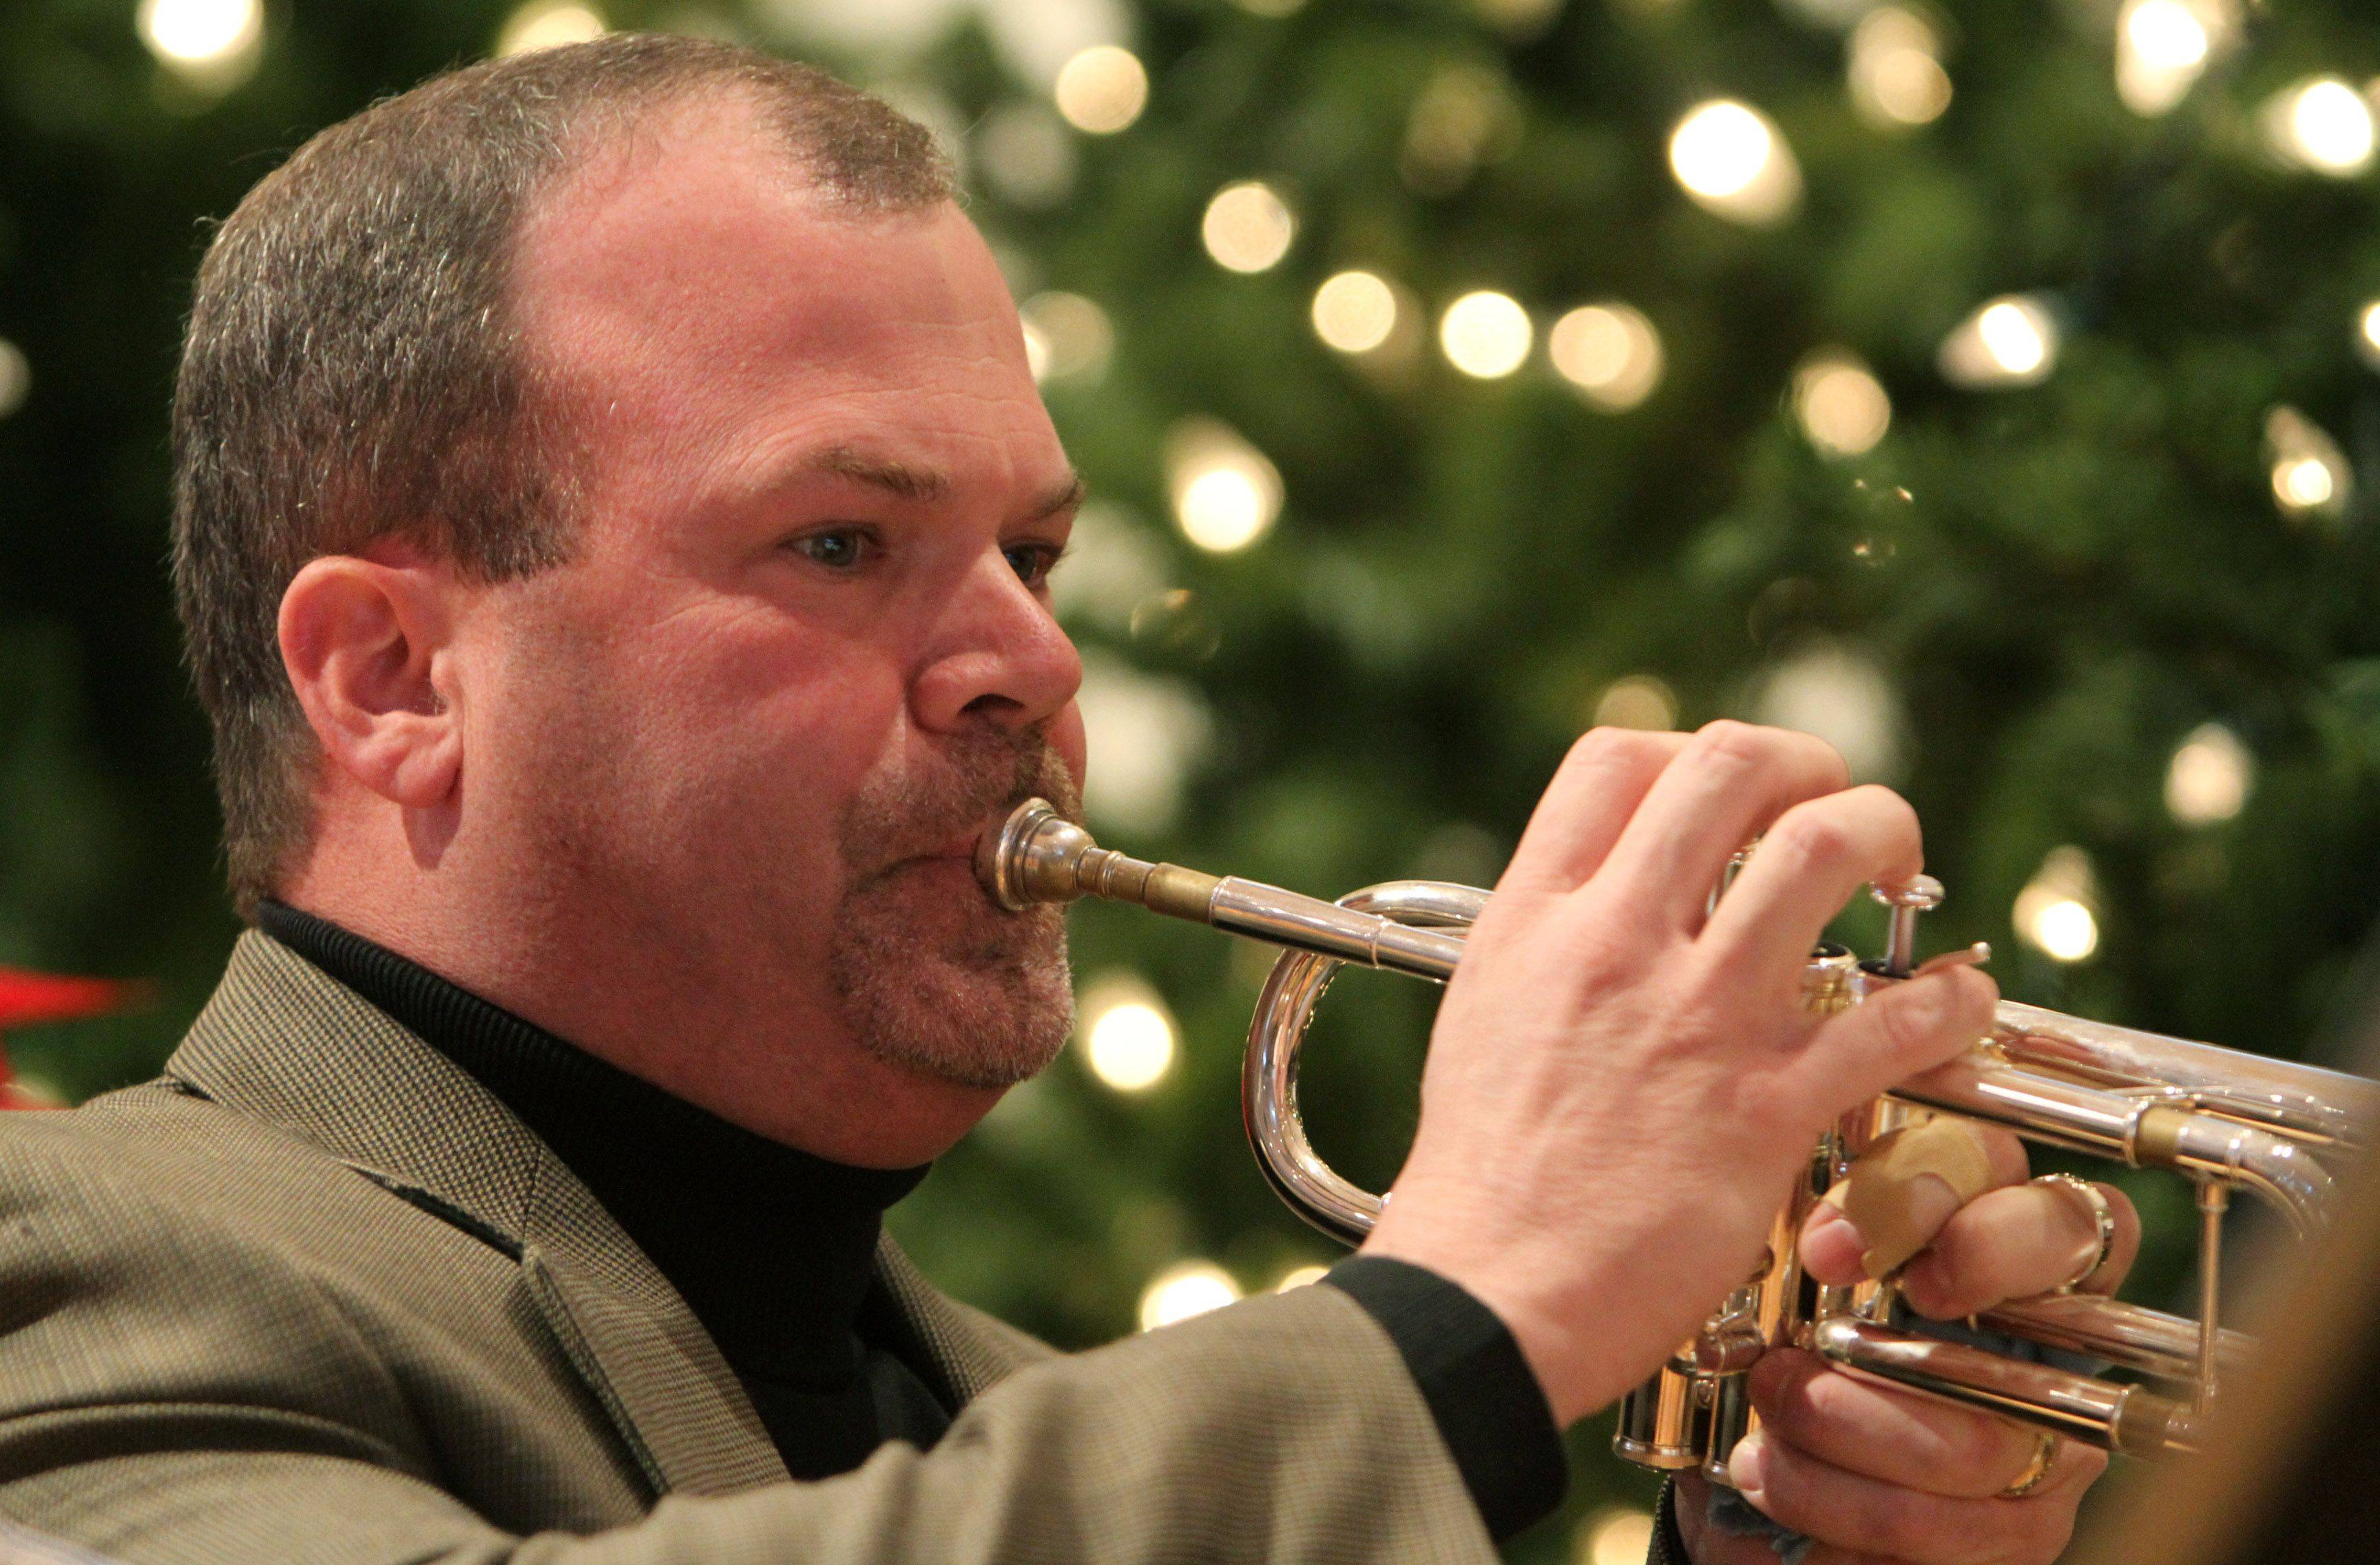 Joe Perry plays the trumpet during Christmas carols at St. Paul the Apostle Catholic Church in Gurnee Christmas Eve.